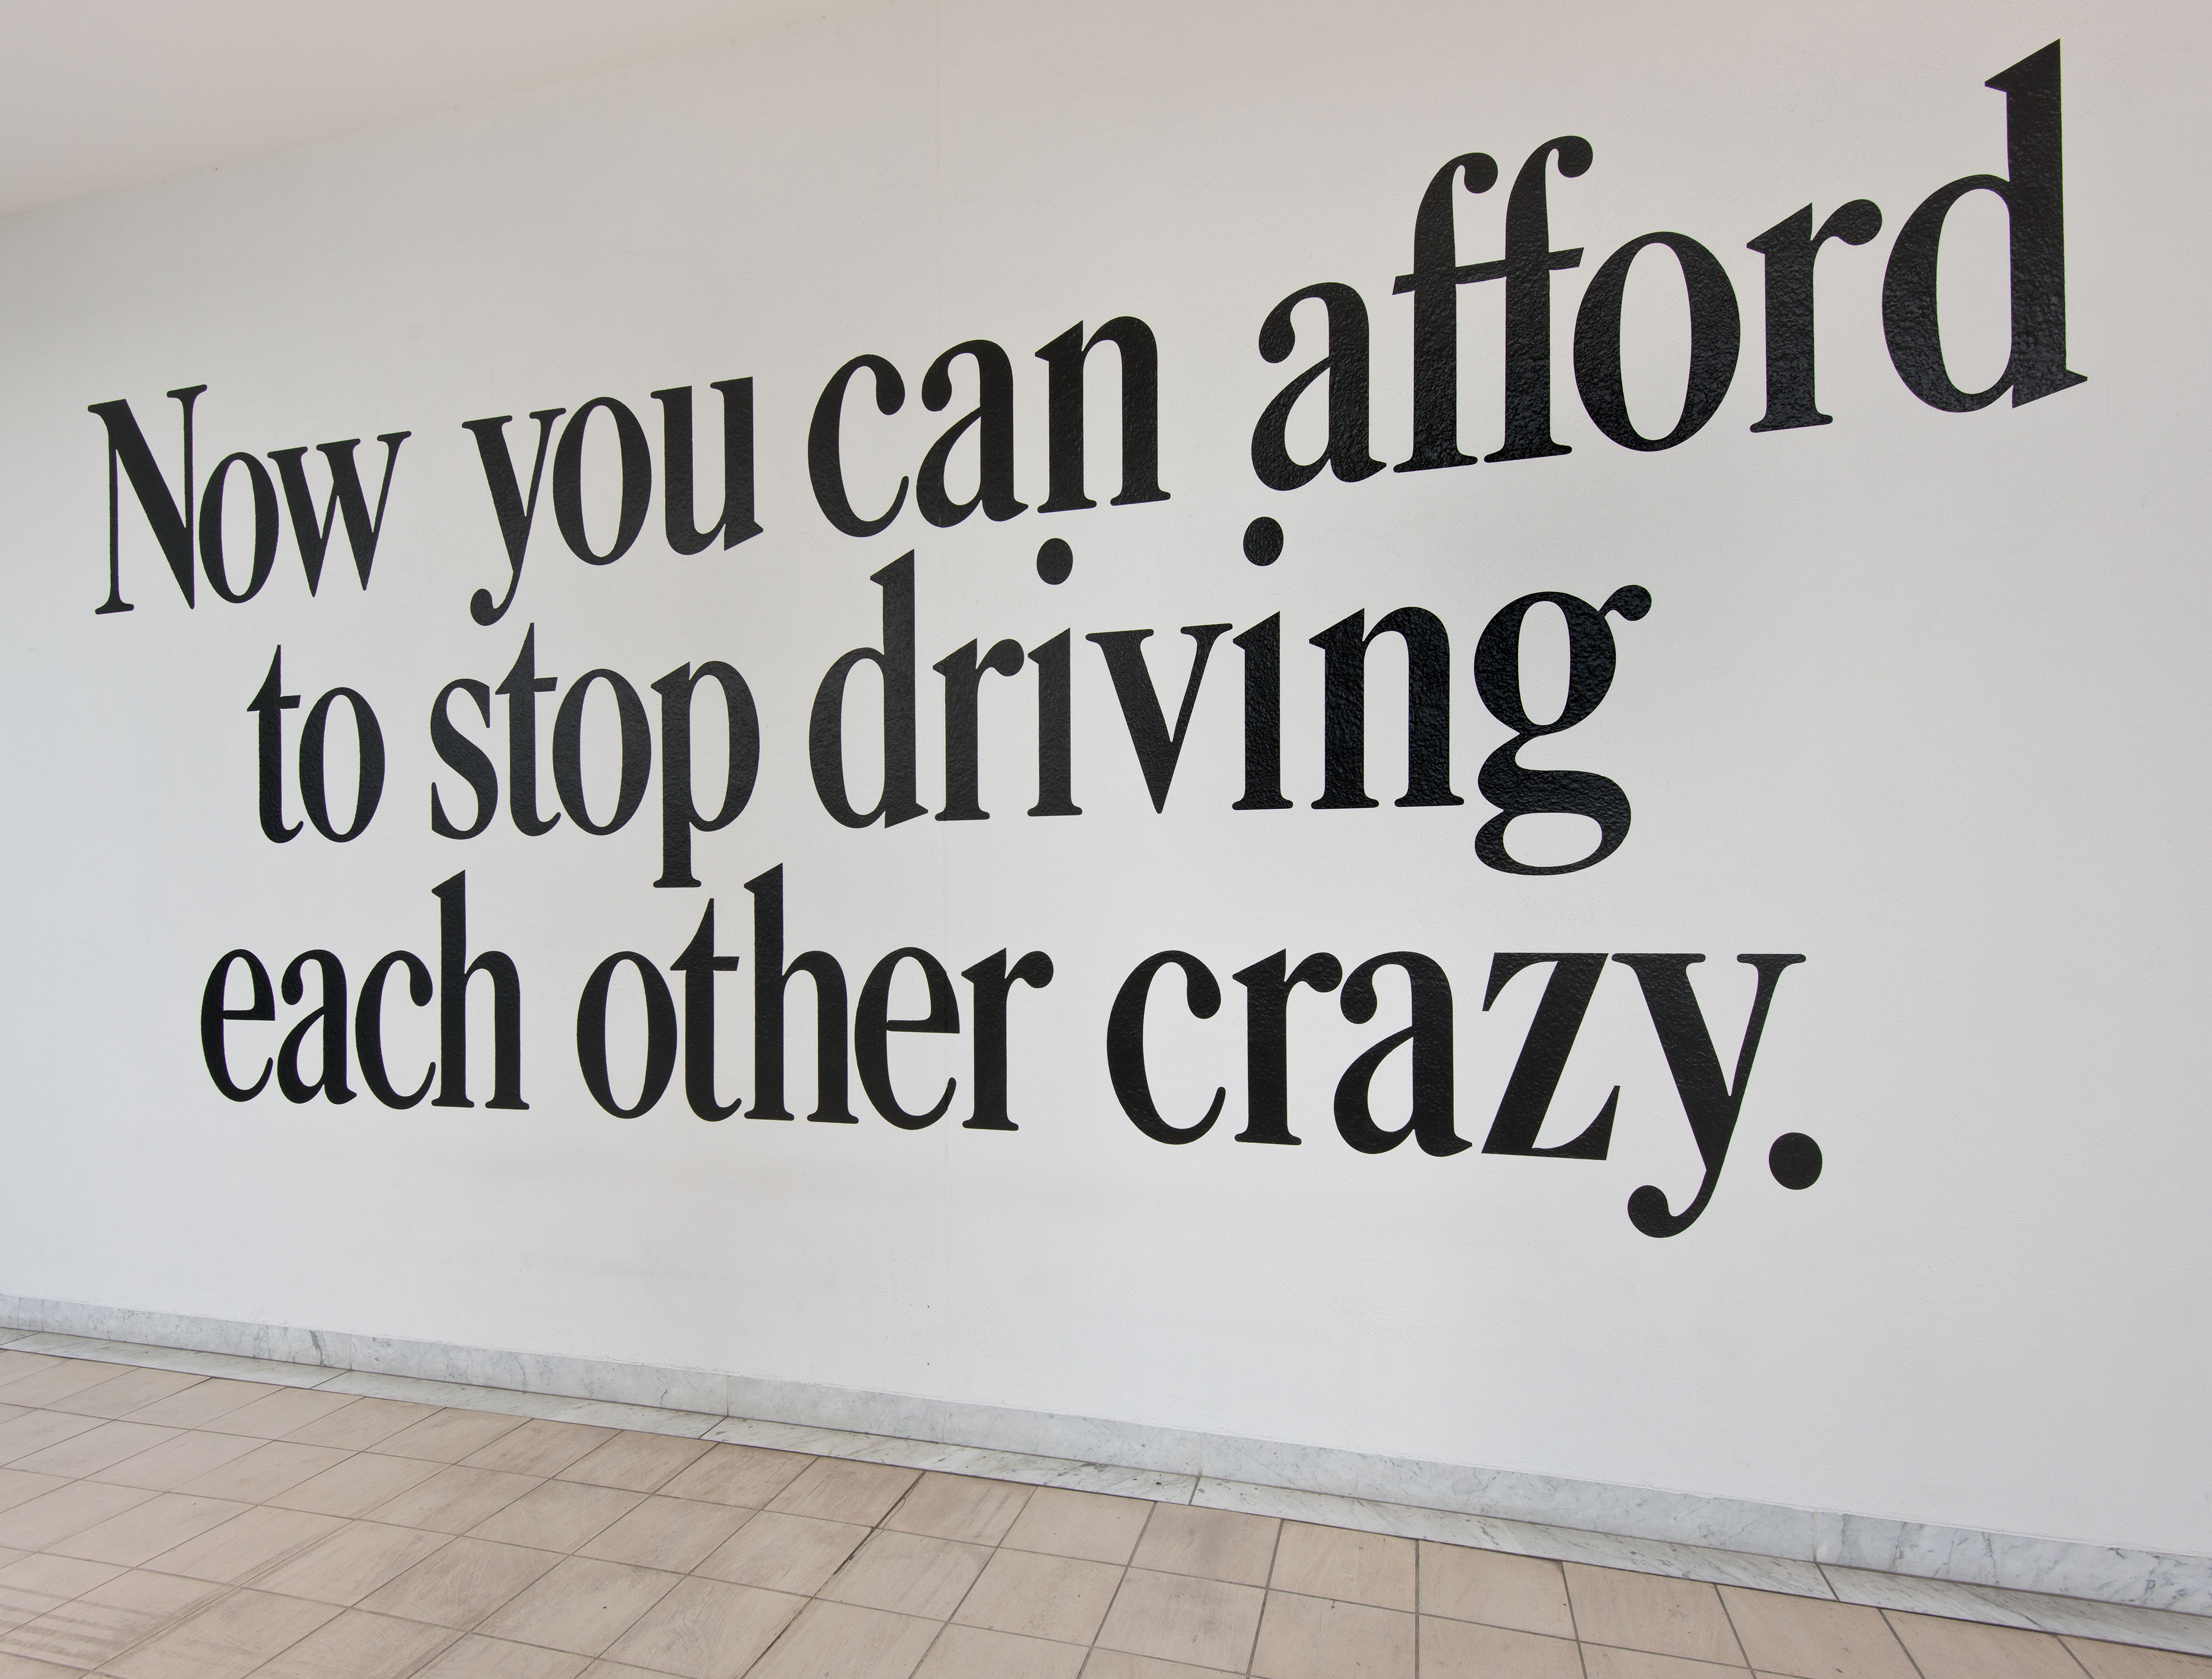 now you can afford to stop driving each other crazy, by Haim Steinbach, 1986